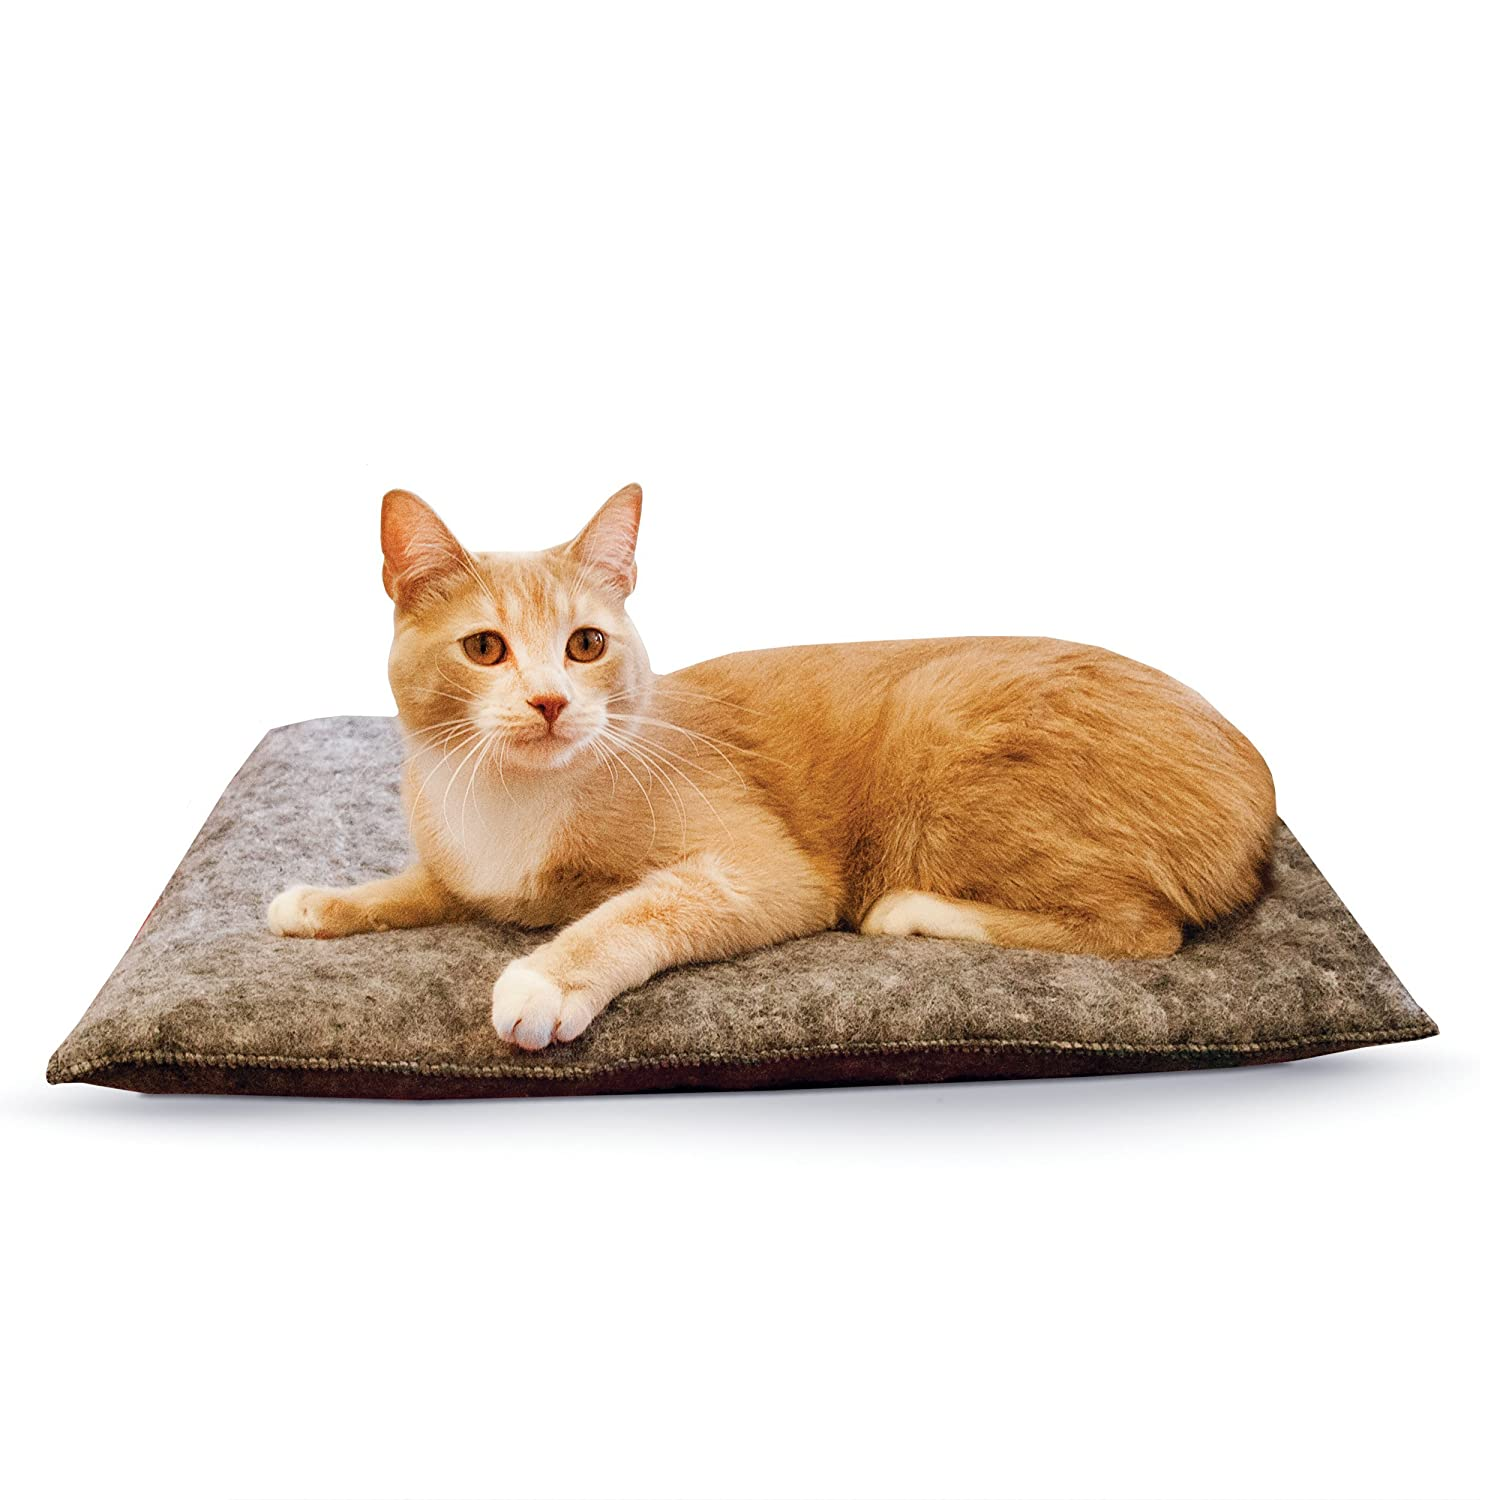 K&H Pet Products Amazin' Kitty Pad - Traps Cat Hair and Dander (Heated or Unheated)